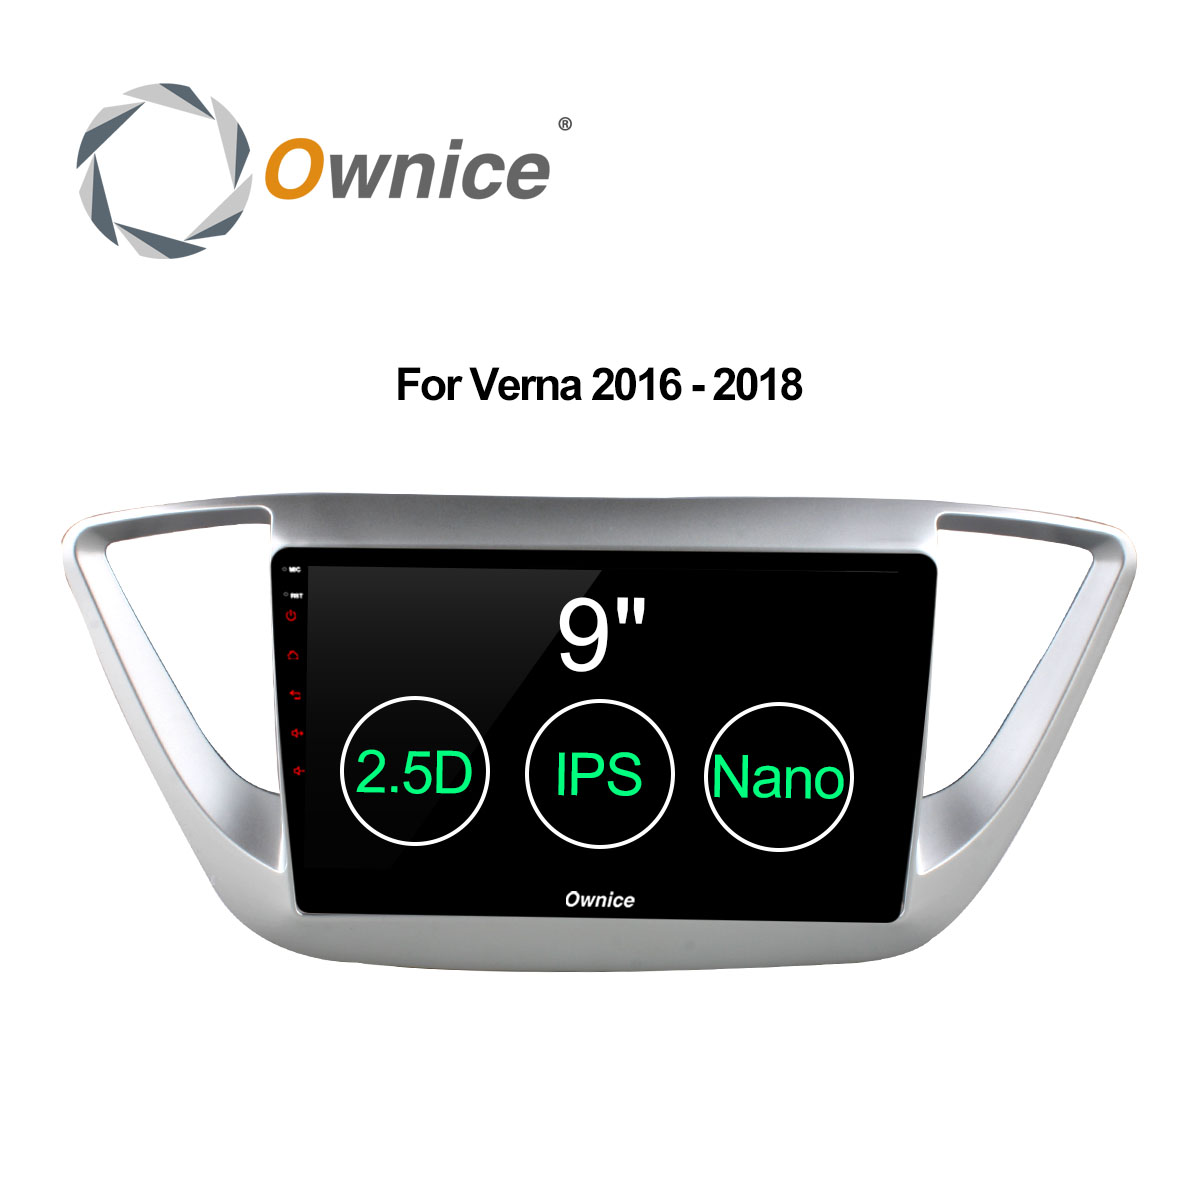 Ownice C500+ Android 6.0 Octa Core Car DVD GPS Player For Hyundai Verna Solaris 2016 Car Radio Video Player Support Car Play DVR special dvr without battery for ownice c500 car dvd and the dvd manufacture date must after 10th of april 2017 included 10th